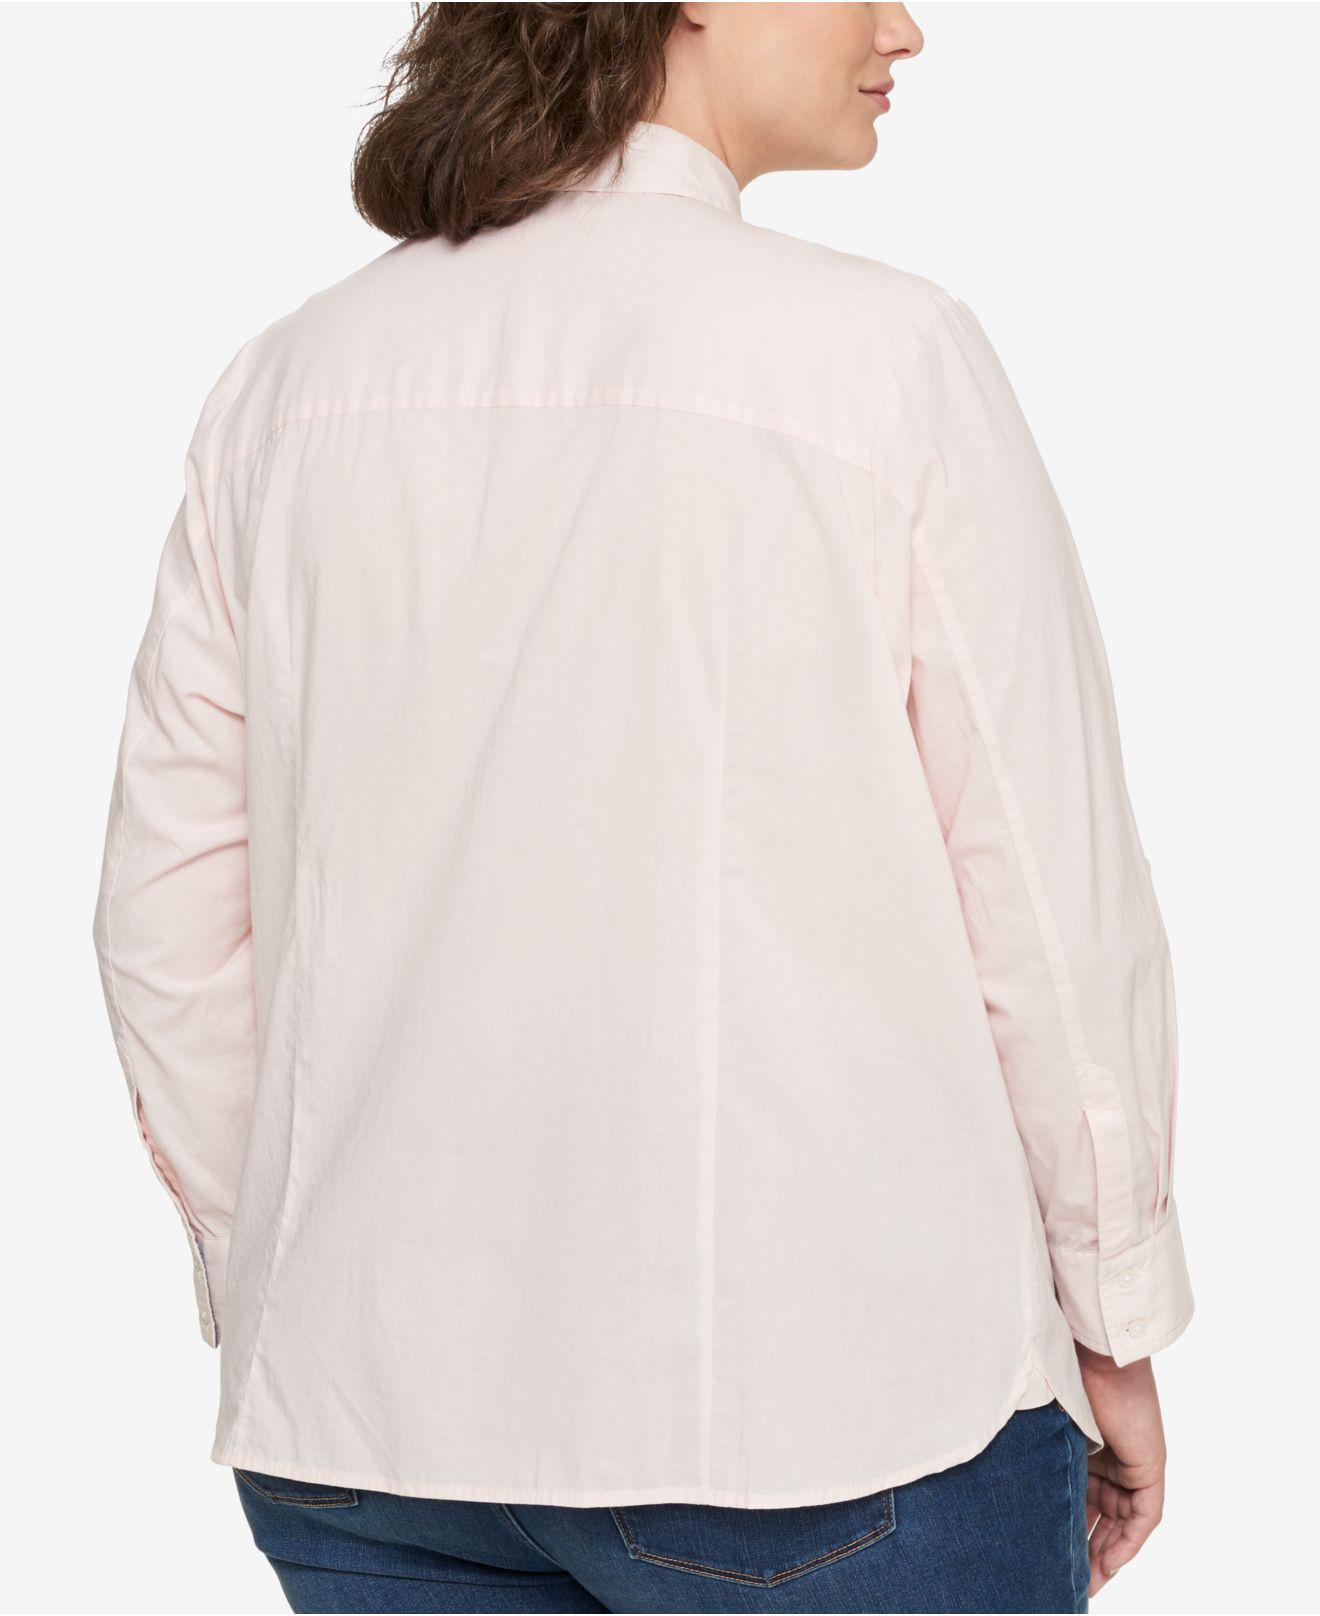 520fbf426e625 Lyst - Tommy Hilfiger Plus Size Cotton Utility Shirt in Pink